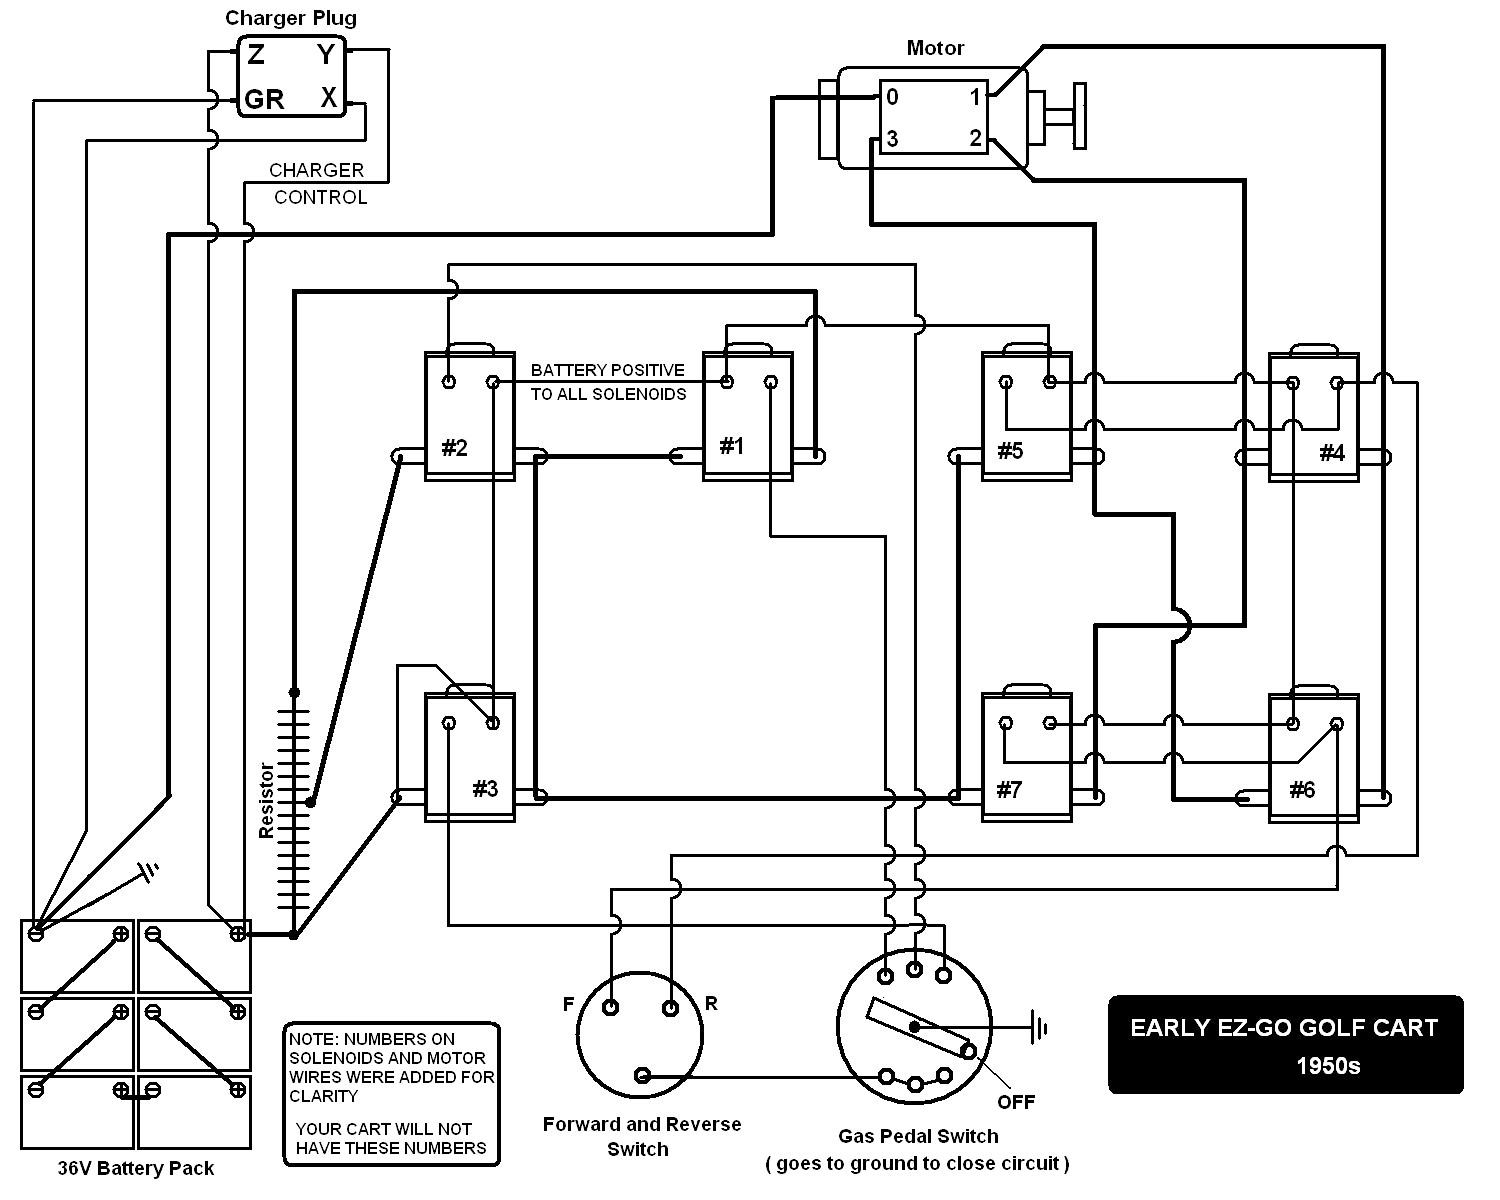 Fan Clutch 2002 Kenworth Wiring Diagram | Wiring Liry on